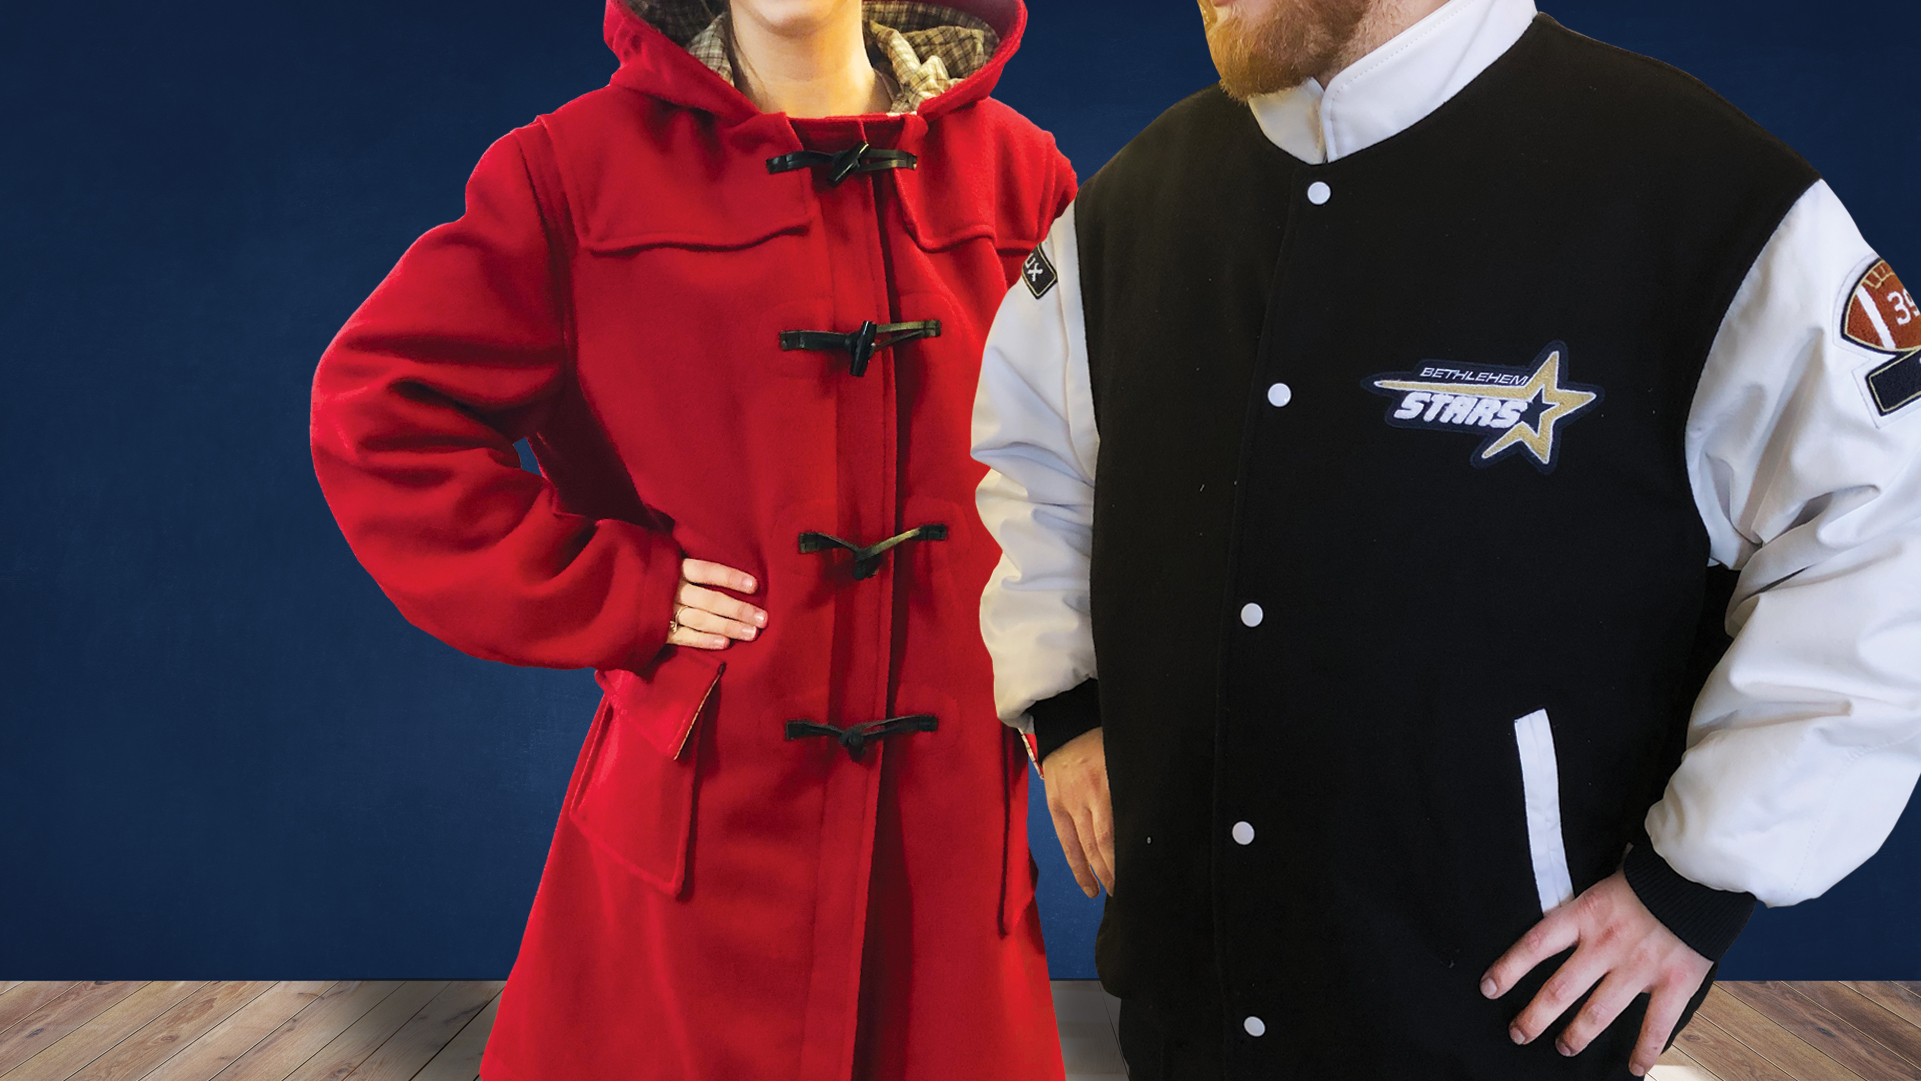 Midwest Sportswear Workwear & Safety - Welcome to the Frontpage!